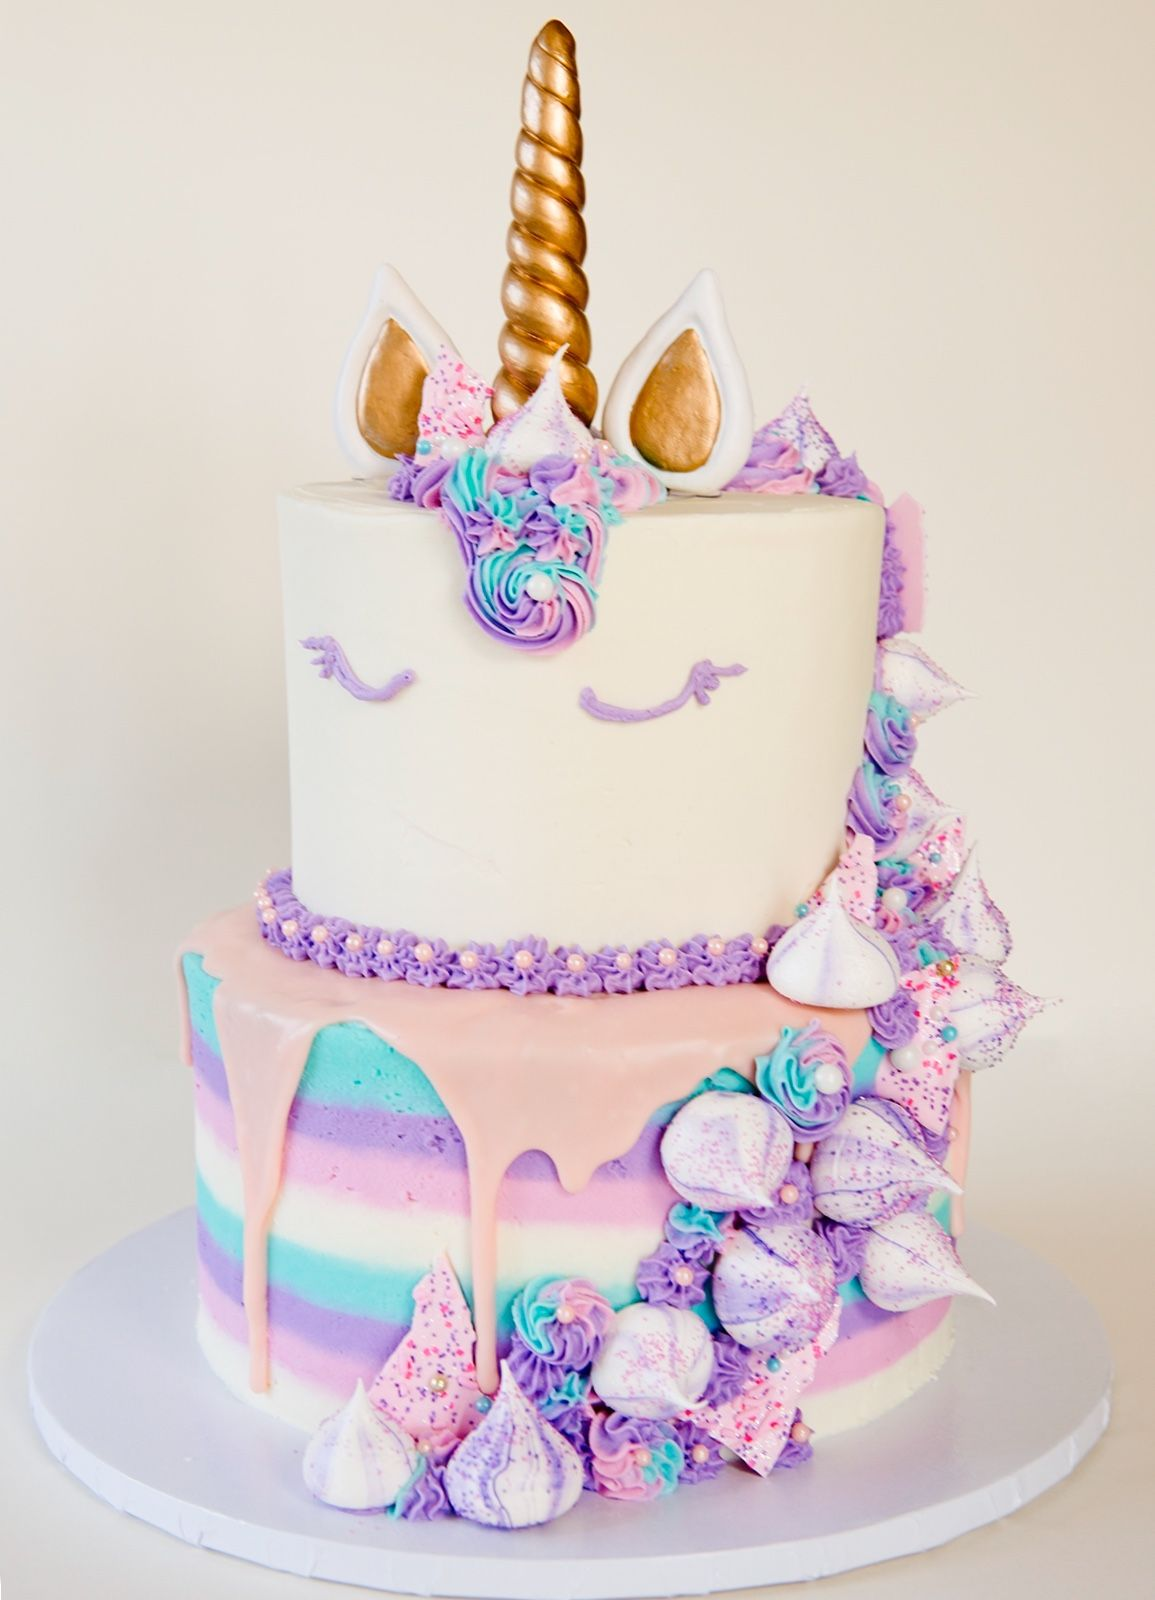 Yorkshirerose Images Unique Unicorn Cakes Hd Wallpaper And